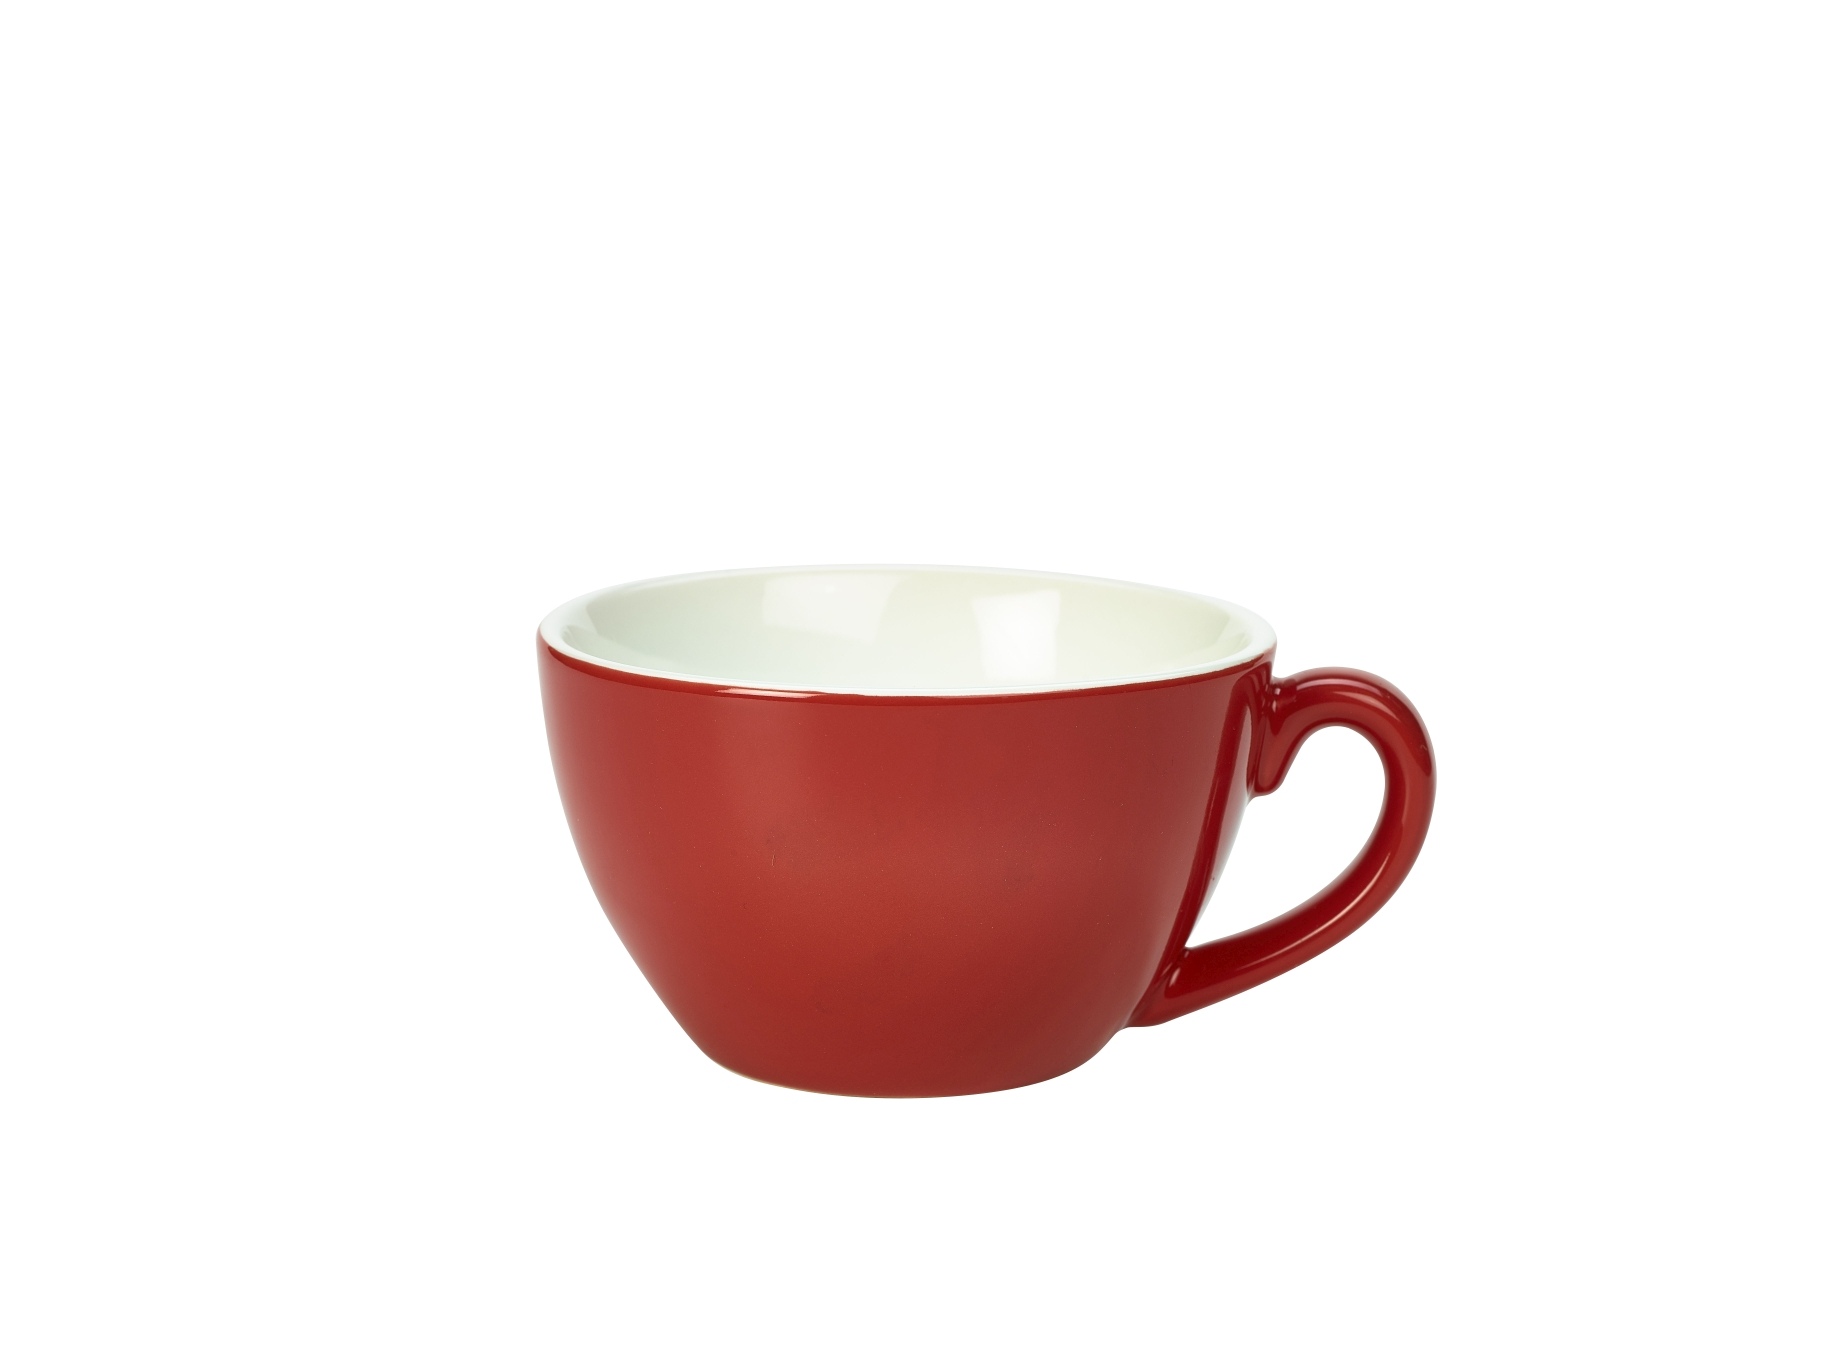 Genware Porcelain Bowl Shaped Cup 34cl Red